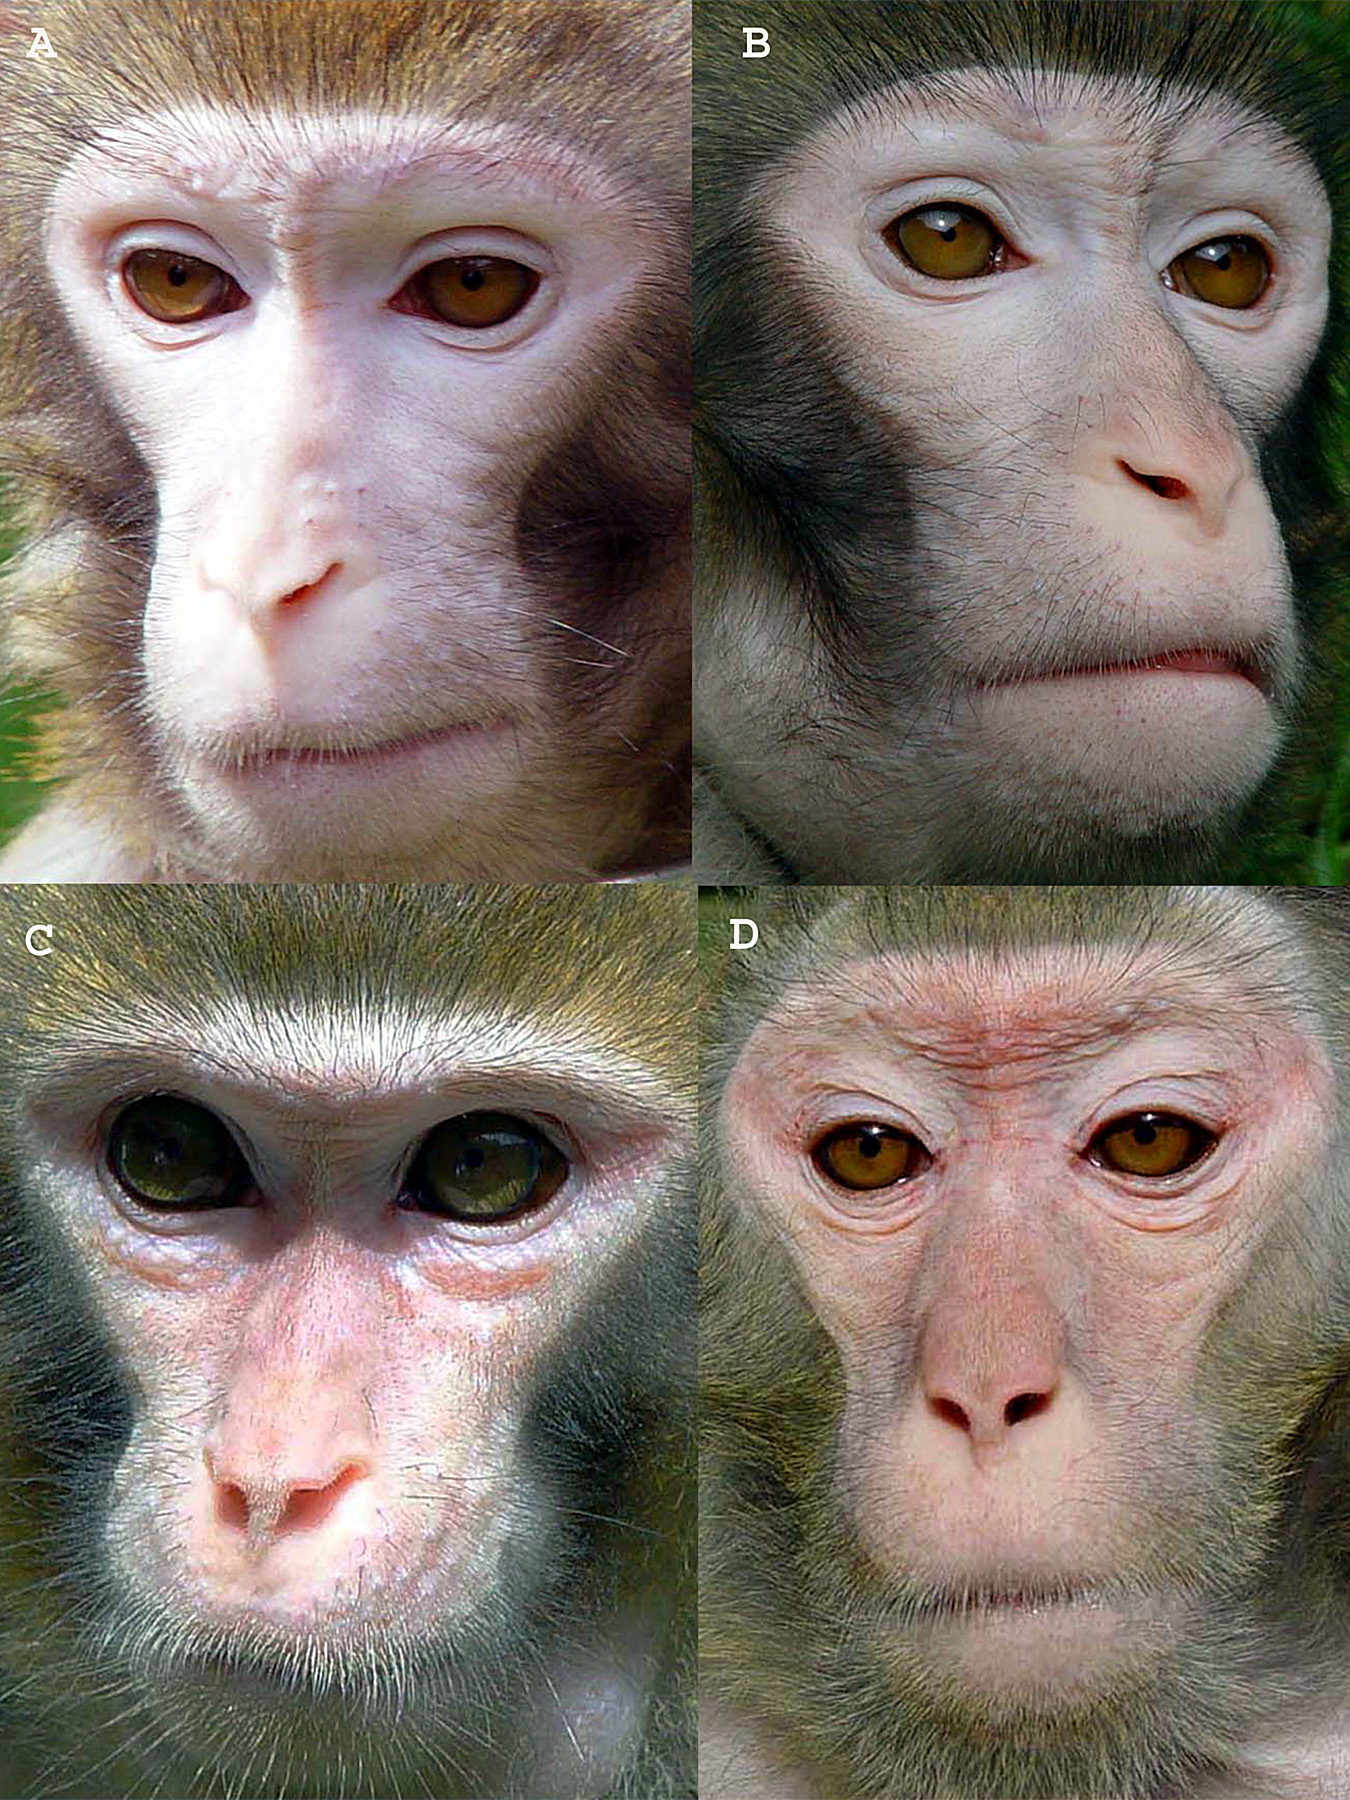 Rhesus monkeys like those used in a University of Utah study of age-related decline in brain-cell function include 4-year-old Ding-Ding (A), 7-year-old Miki (B), 14-year-old Yi-Yi [C] and 26-year-old Grandpa Solomon (D). Other monkeys were used in the study. Those pictured live in China.